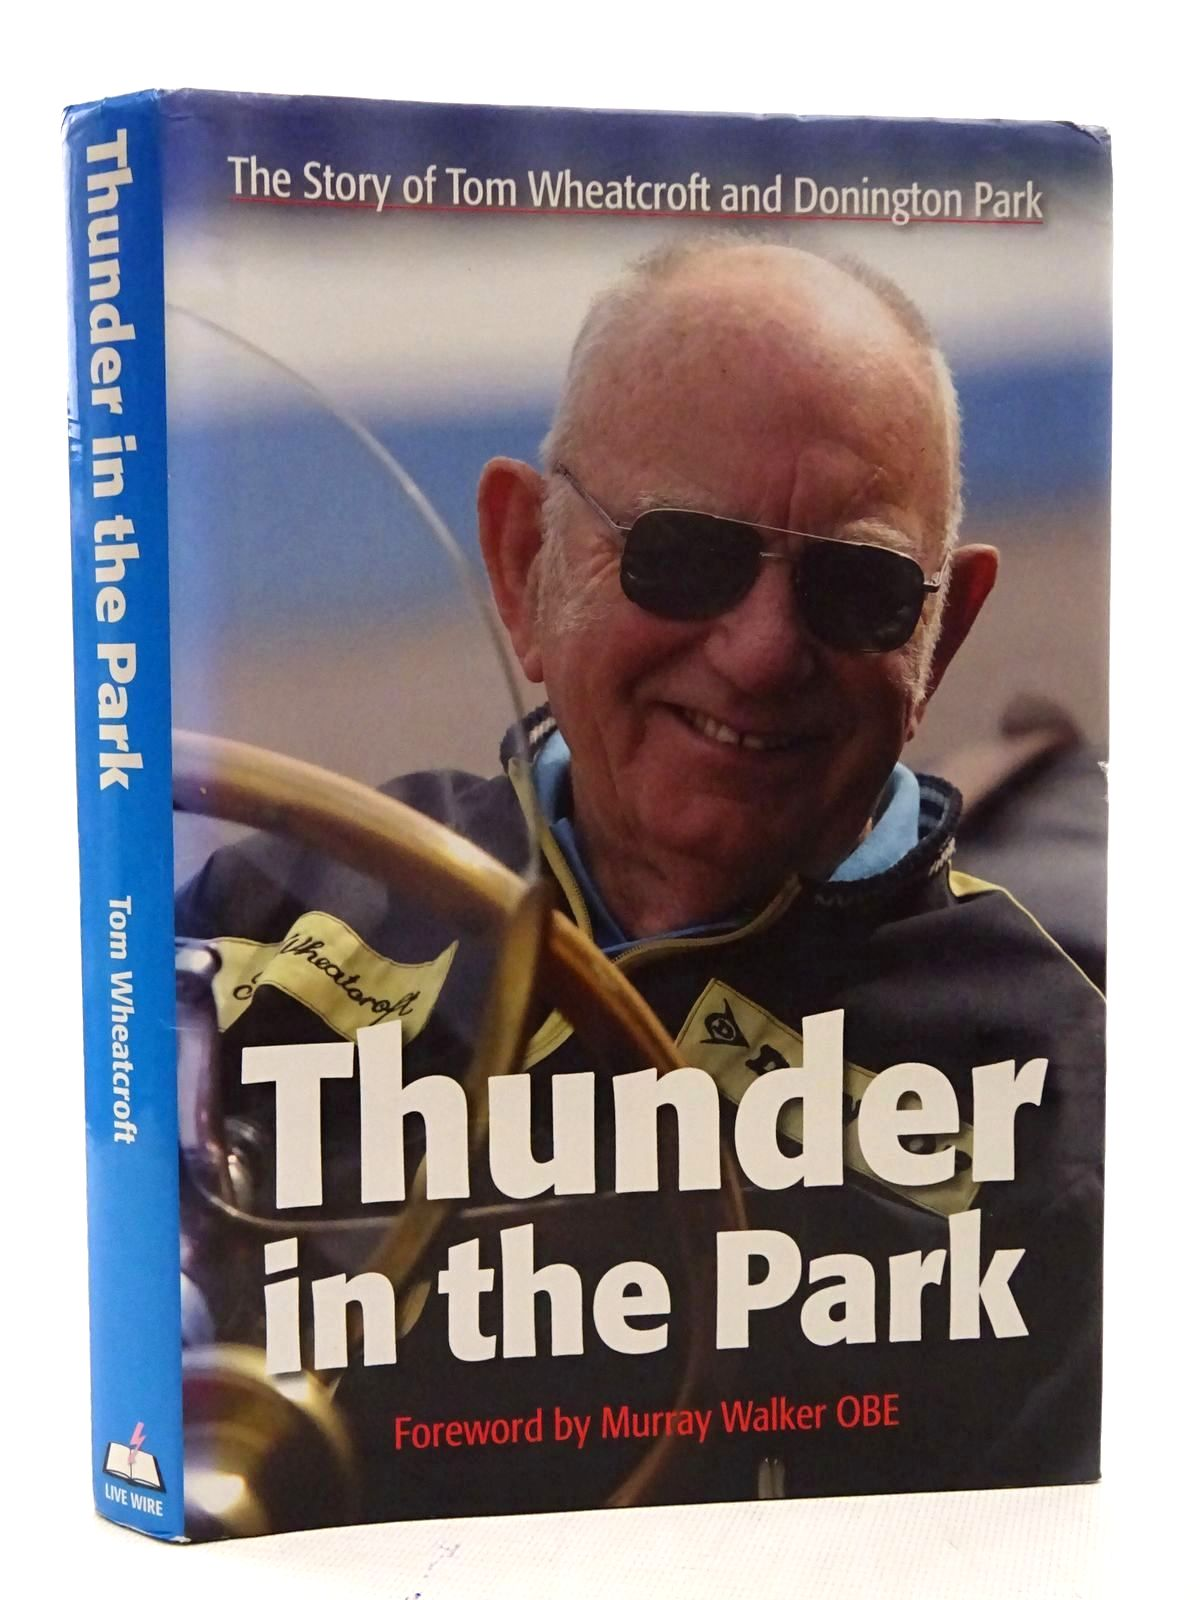 Photo of THUNDER IN THE PARK written by Wheatcroft, Tom published by Live Wire (STOCK CODE: 1610550)  for sale by Stella & Rose's Books